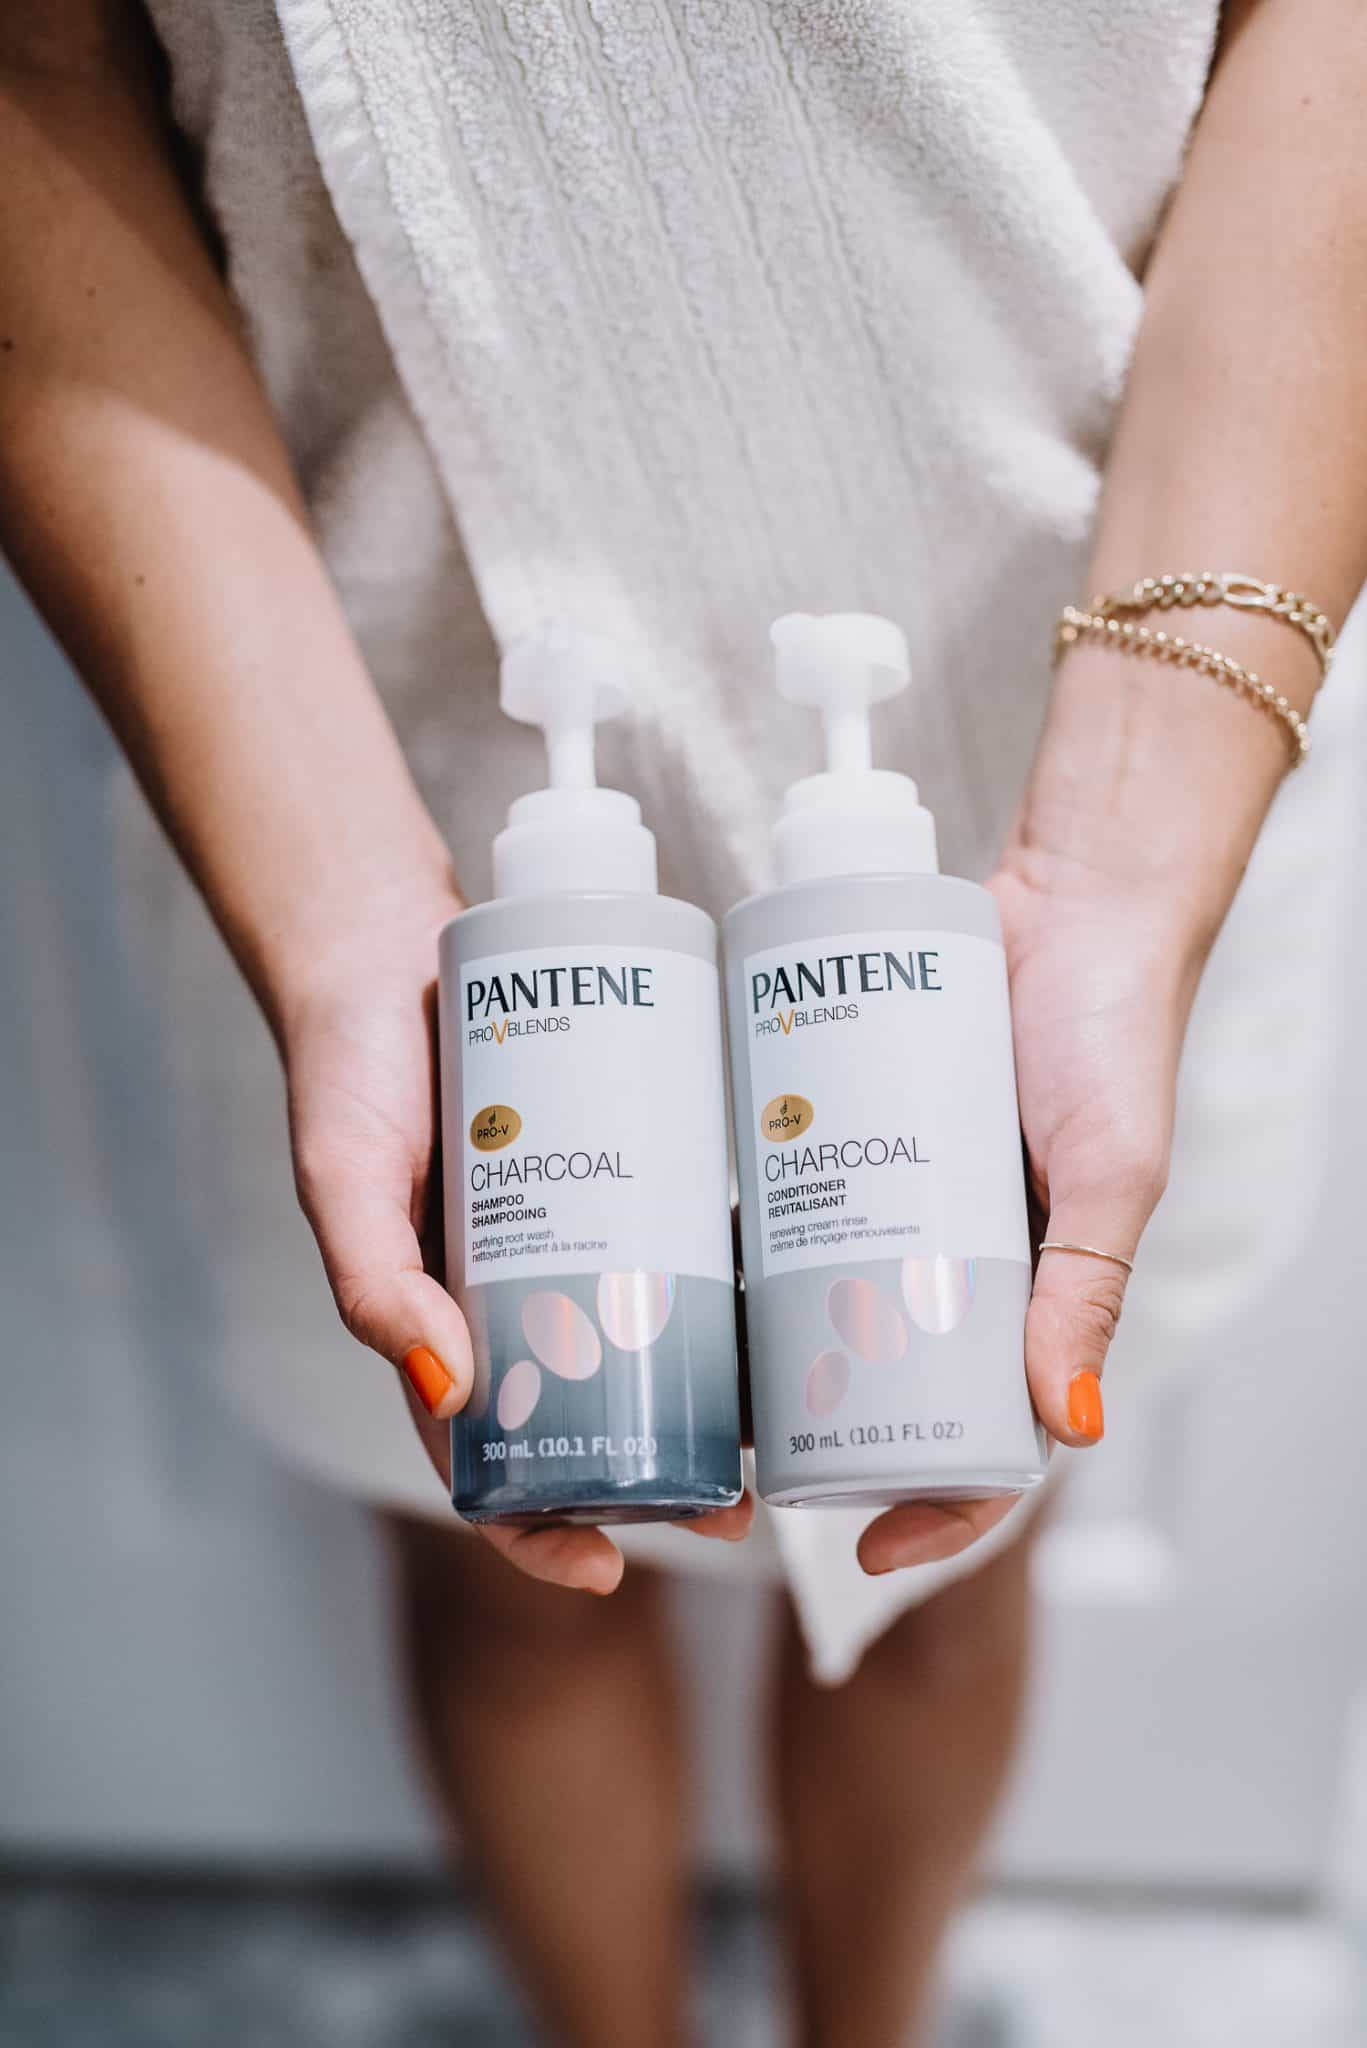 Pantene Charcoal Shampoo and Conditioner Review